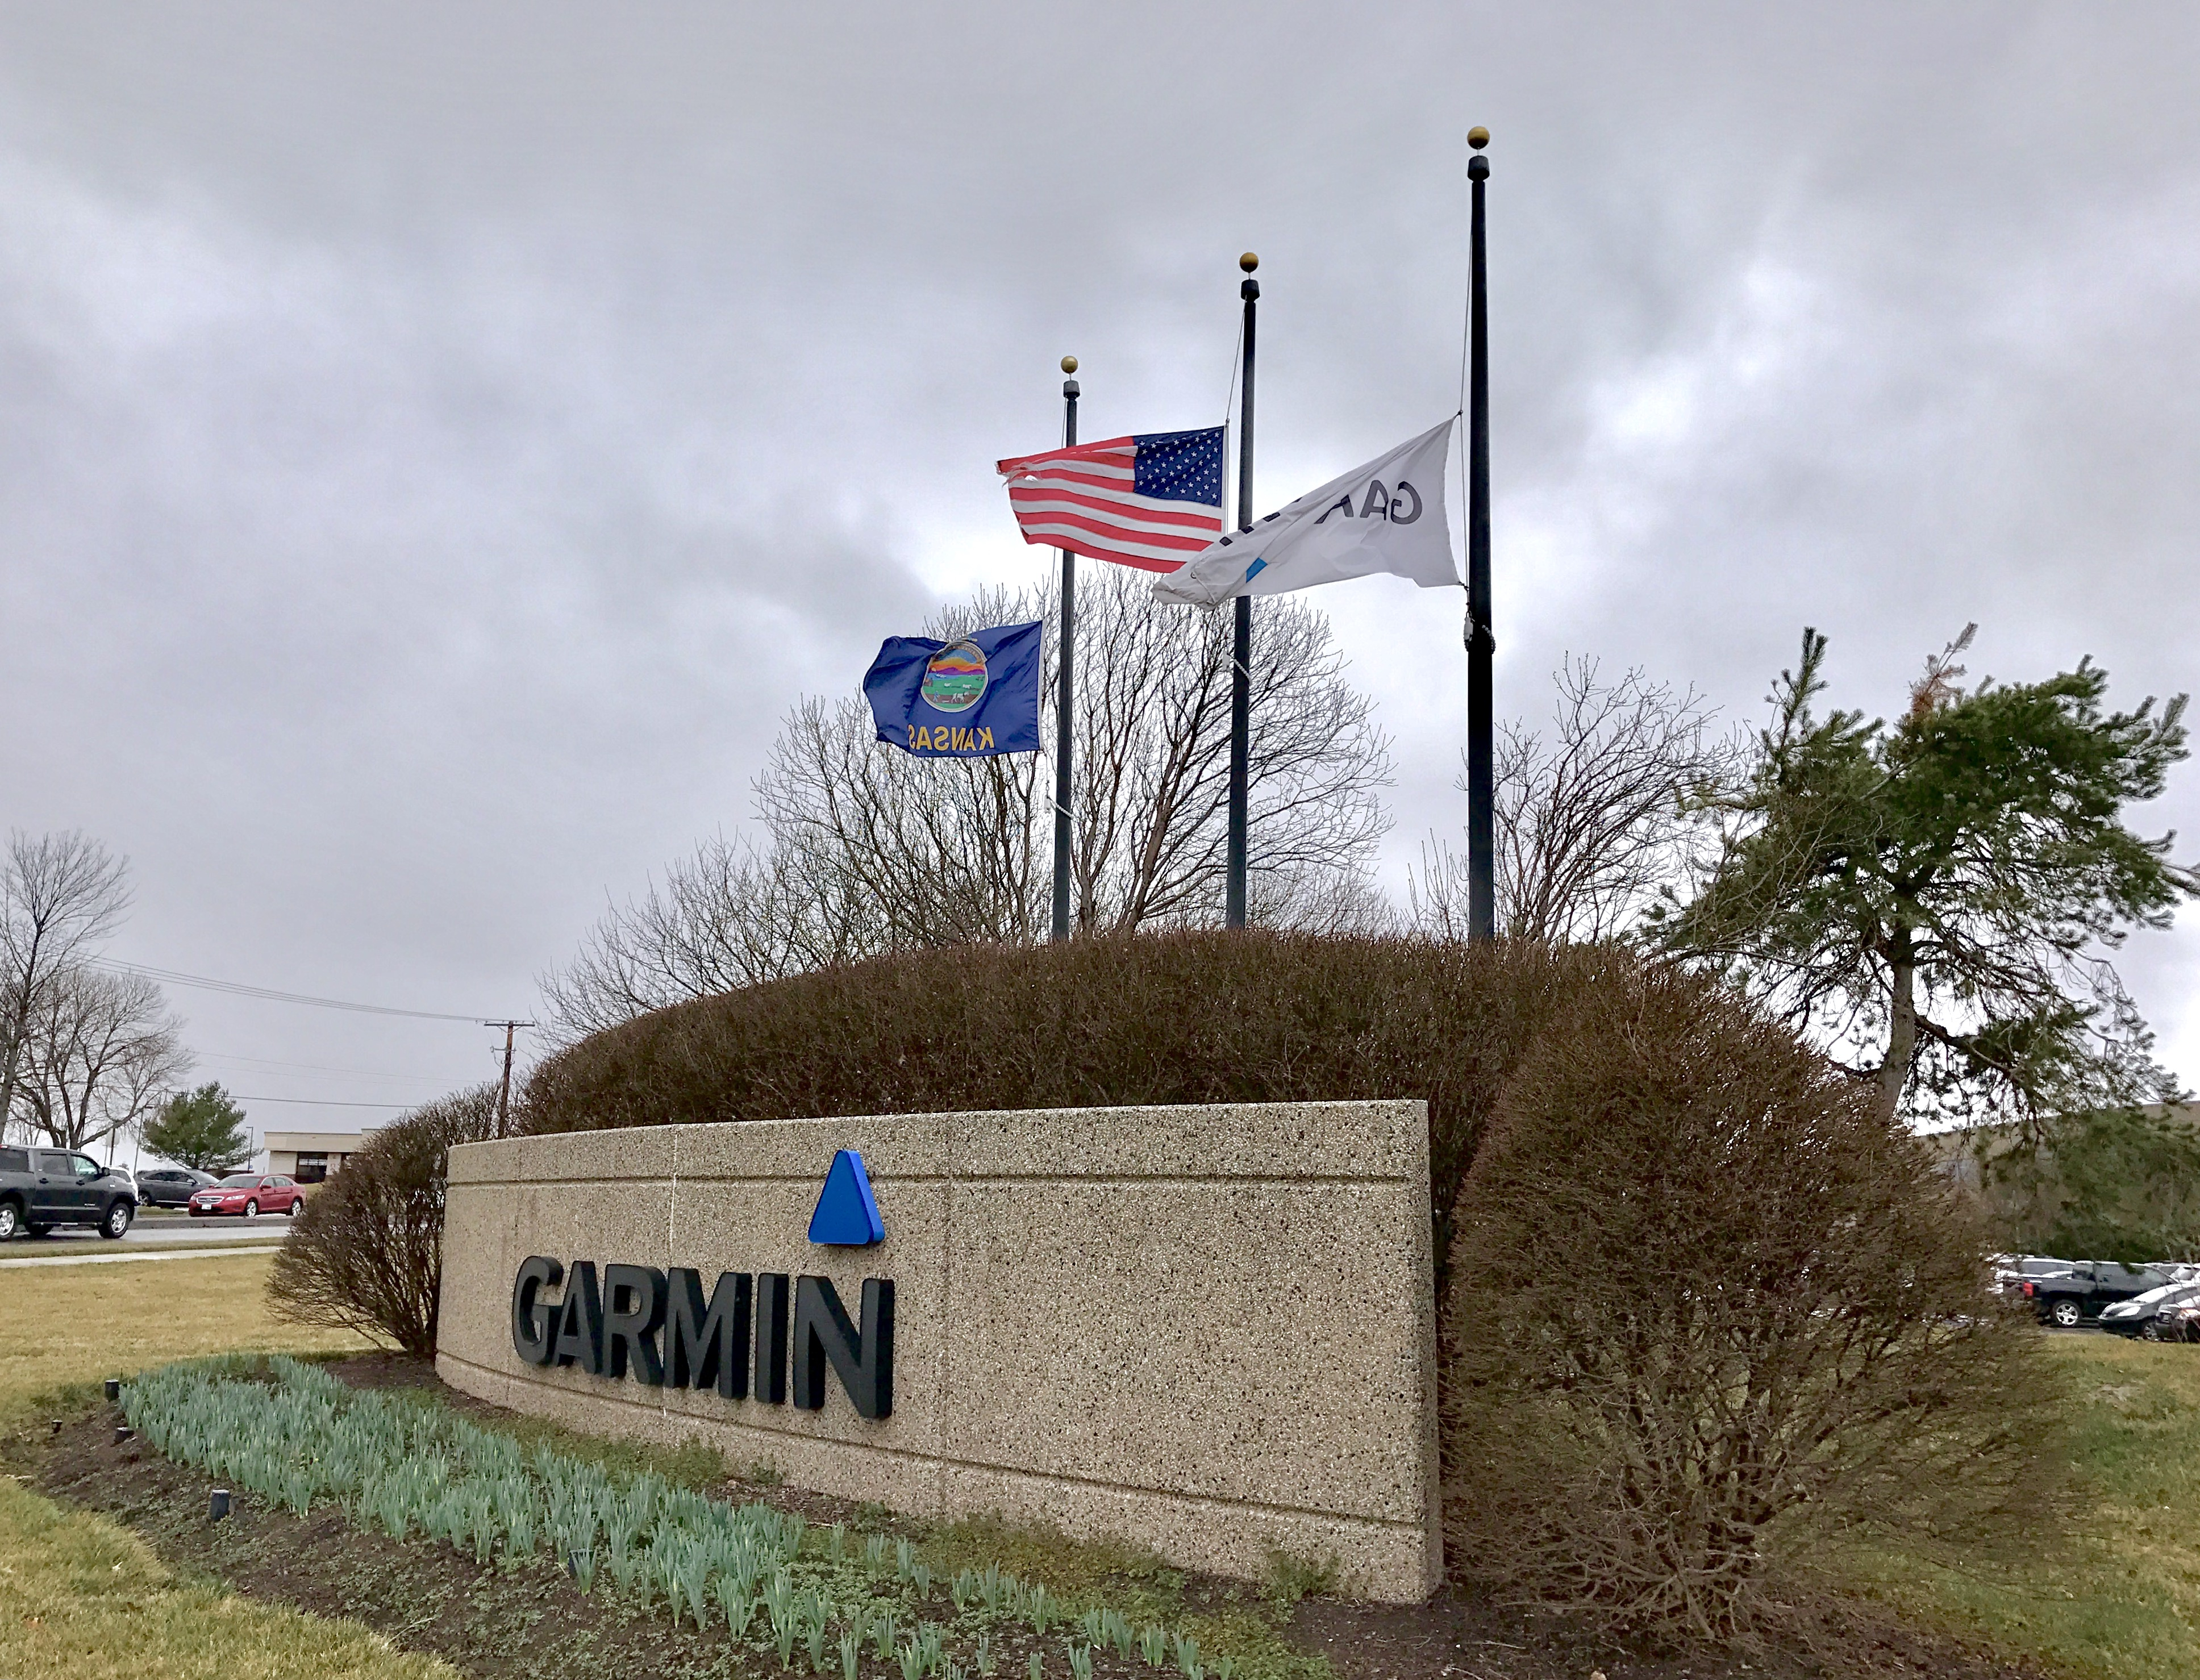 """A spokesperson with Garmin confirms the flags are at half-staff """"because of this tragedy."""""""